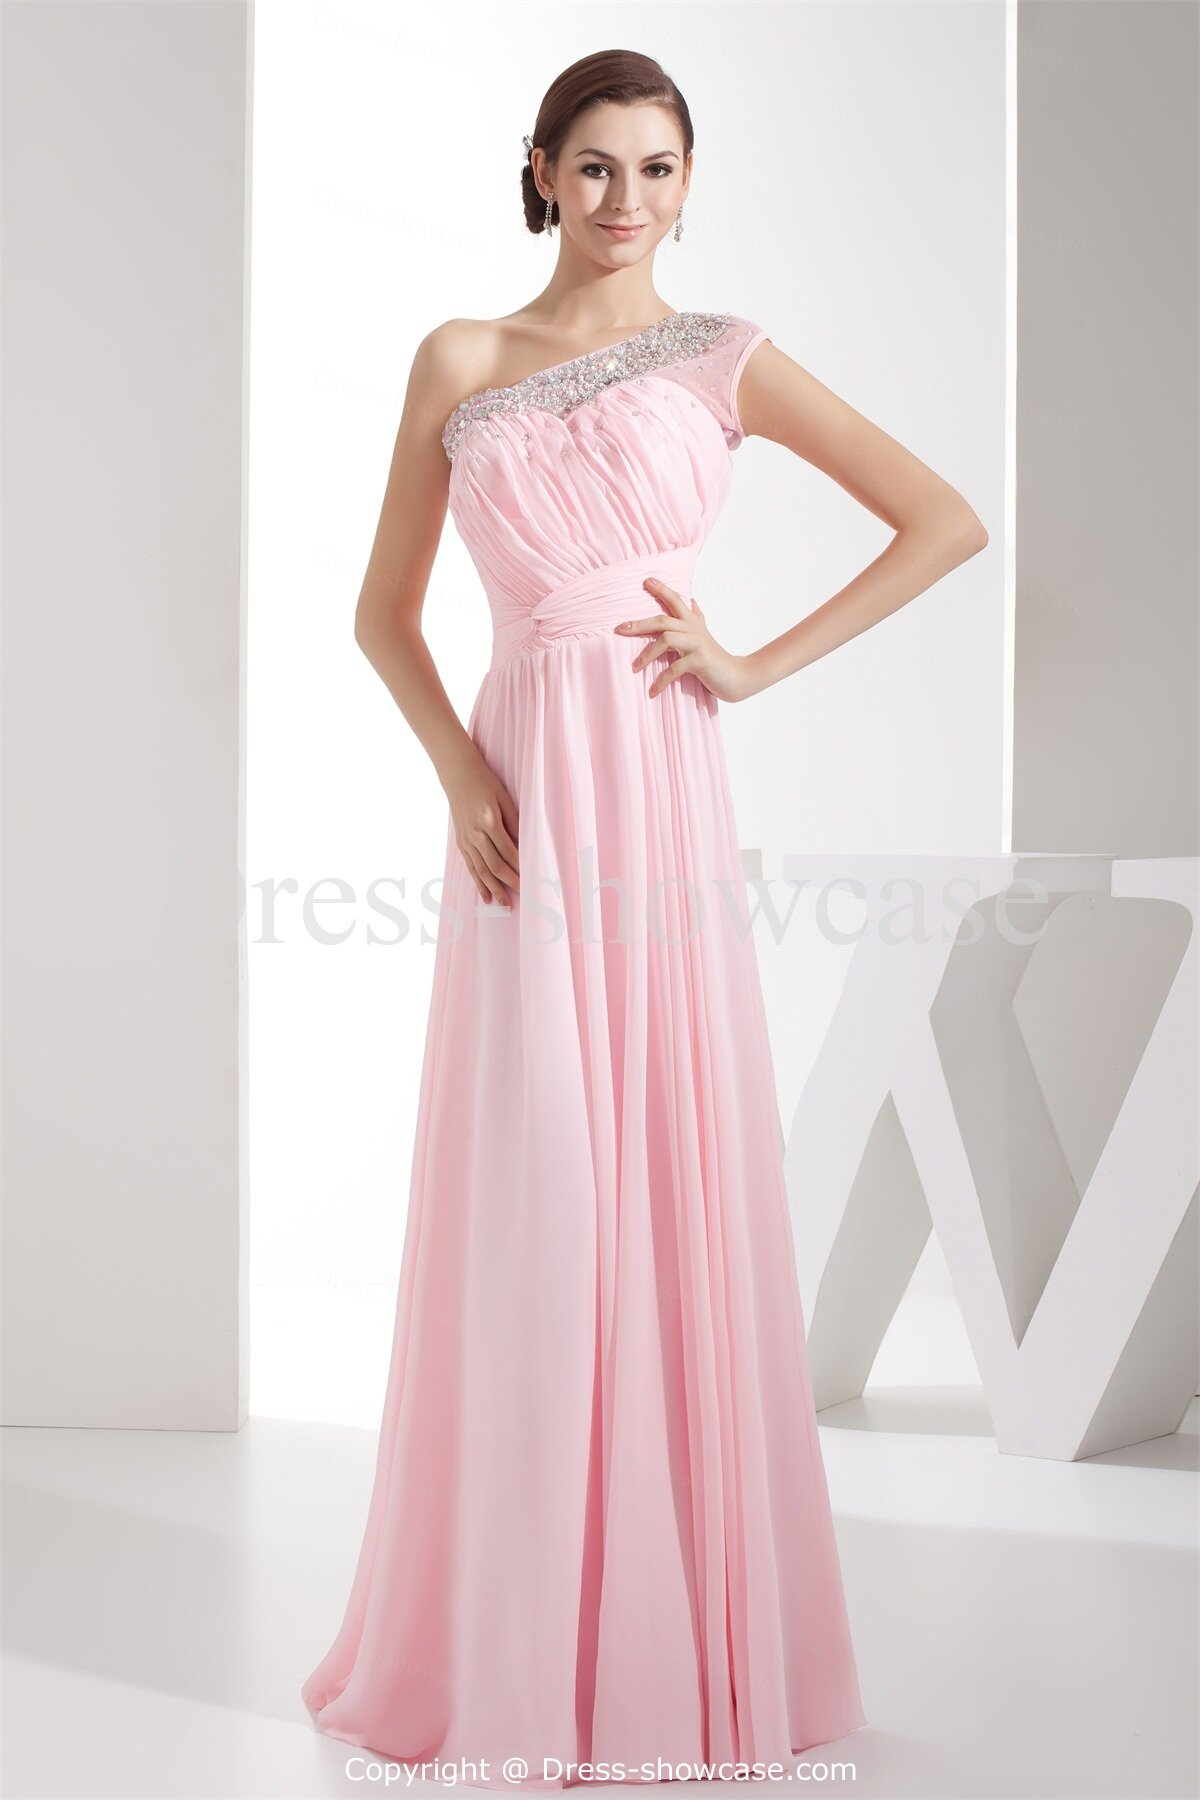 Pink dresses for wedding guests pictures ideas guide to for Guest of wedding dresses